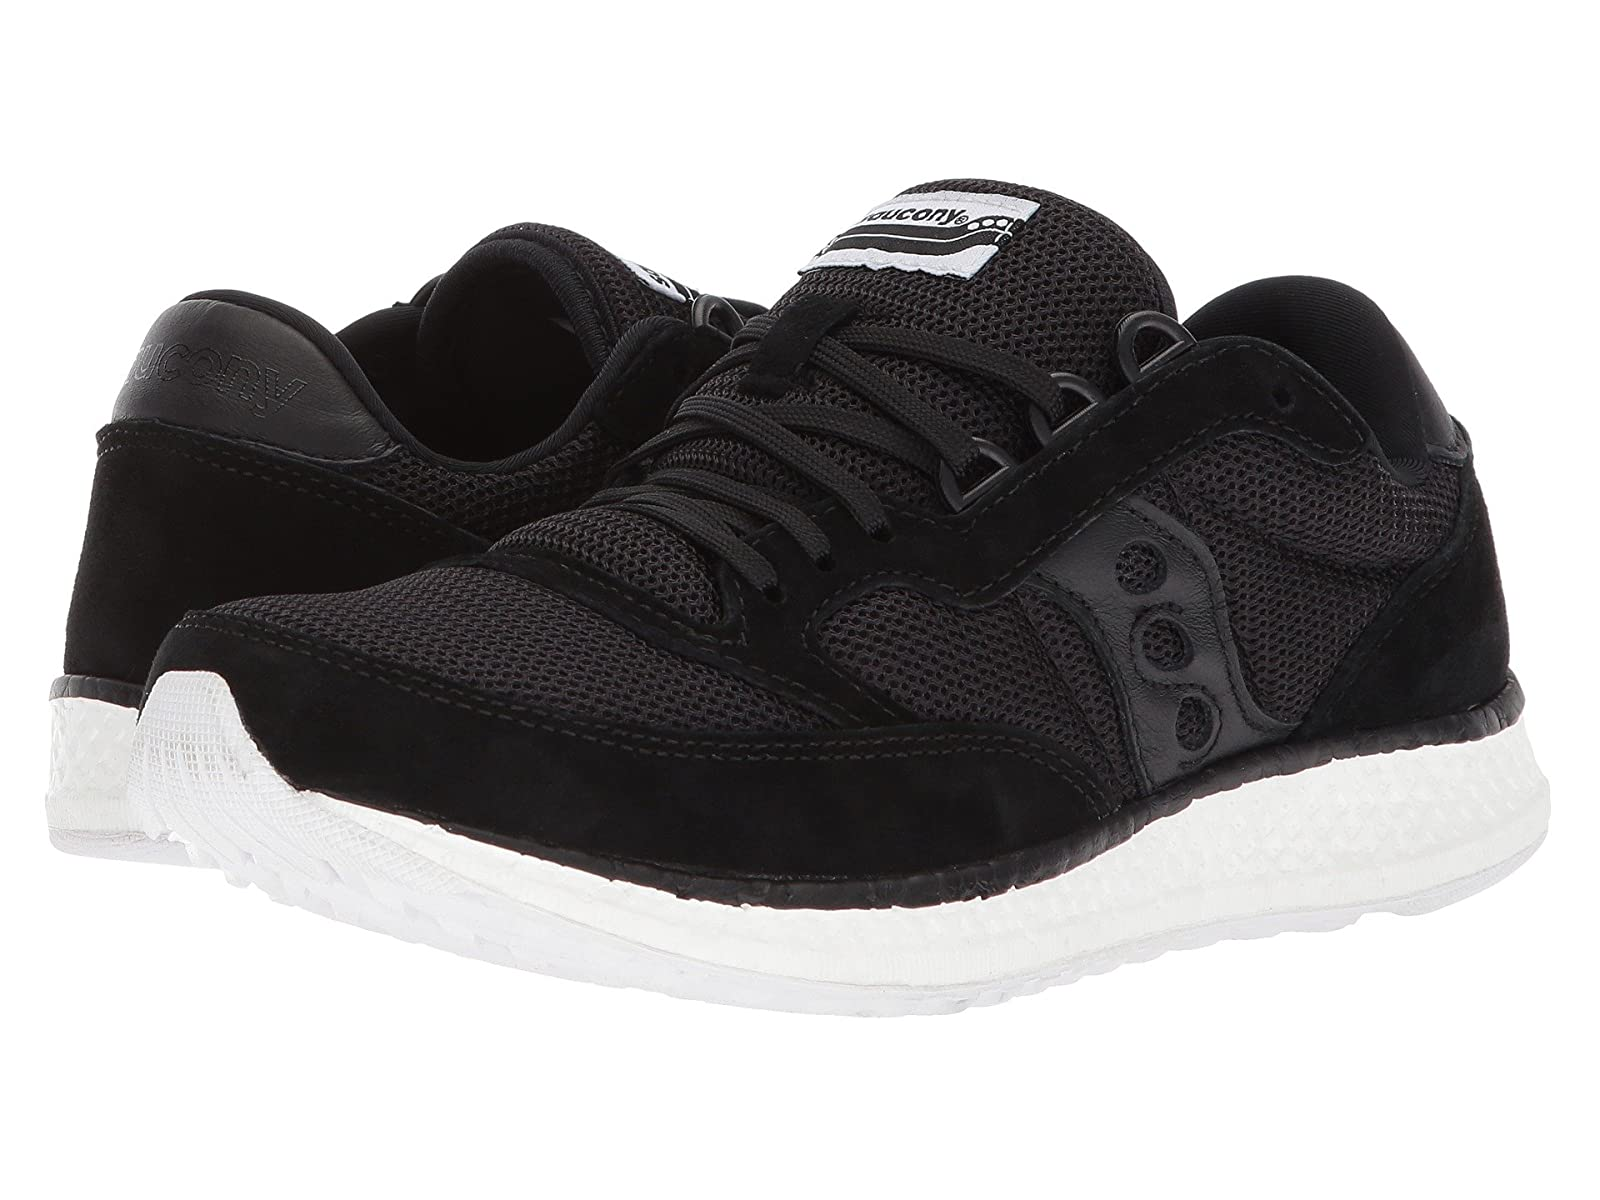 Saucony Originals Freedom RunnerCheap and distinctive eye-catching shoes